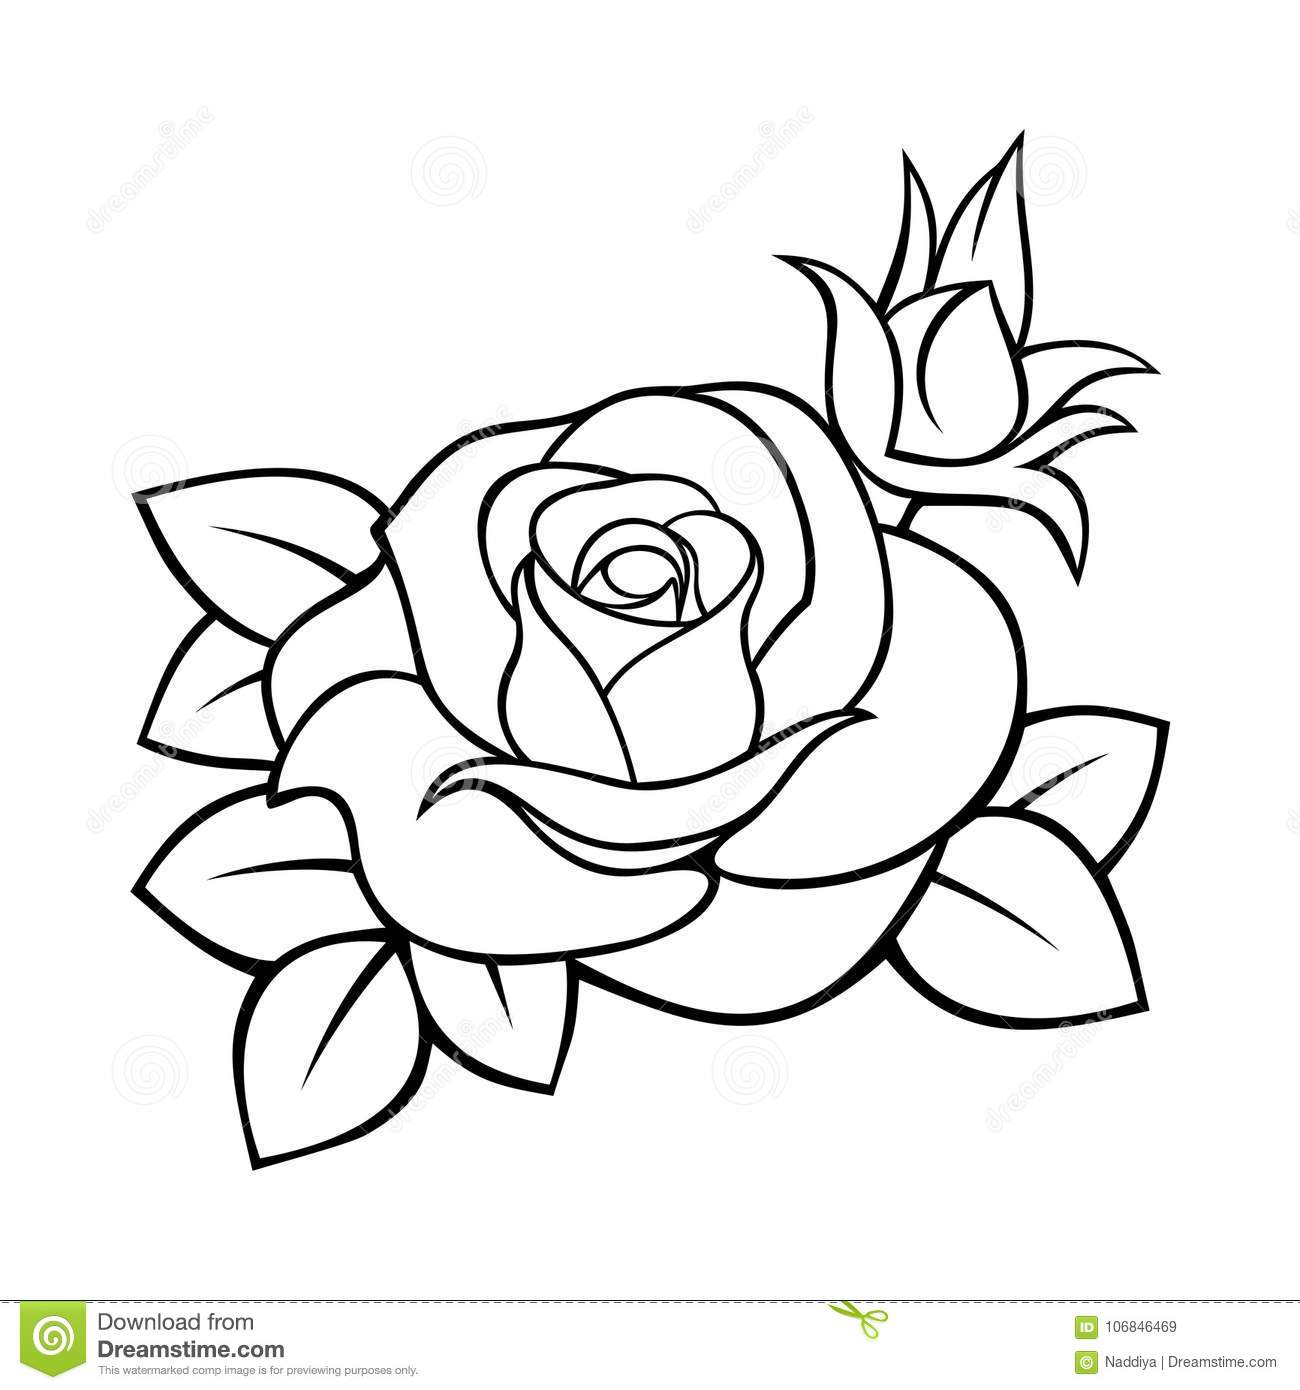 Rose Vector Black And White Contour Drawing Stock Vector